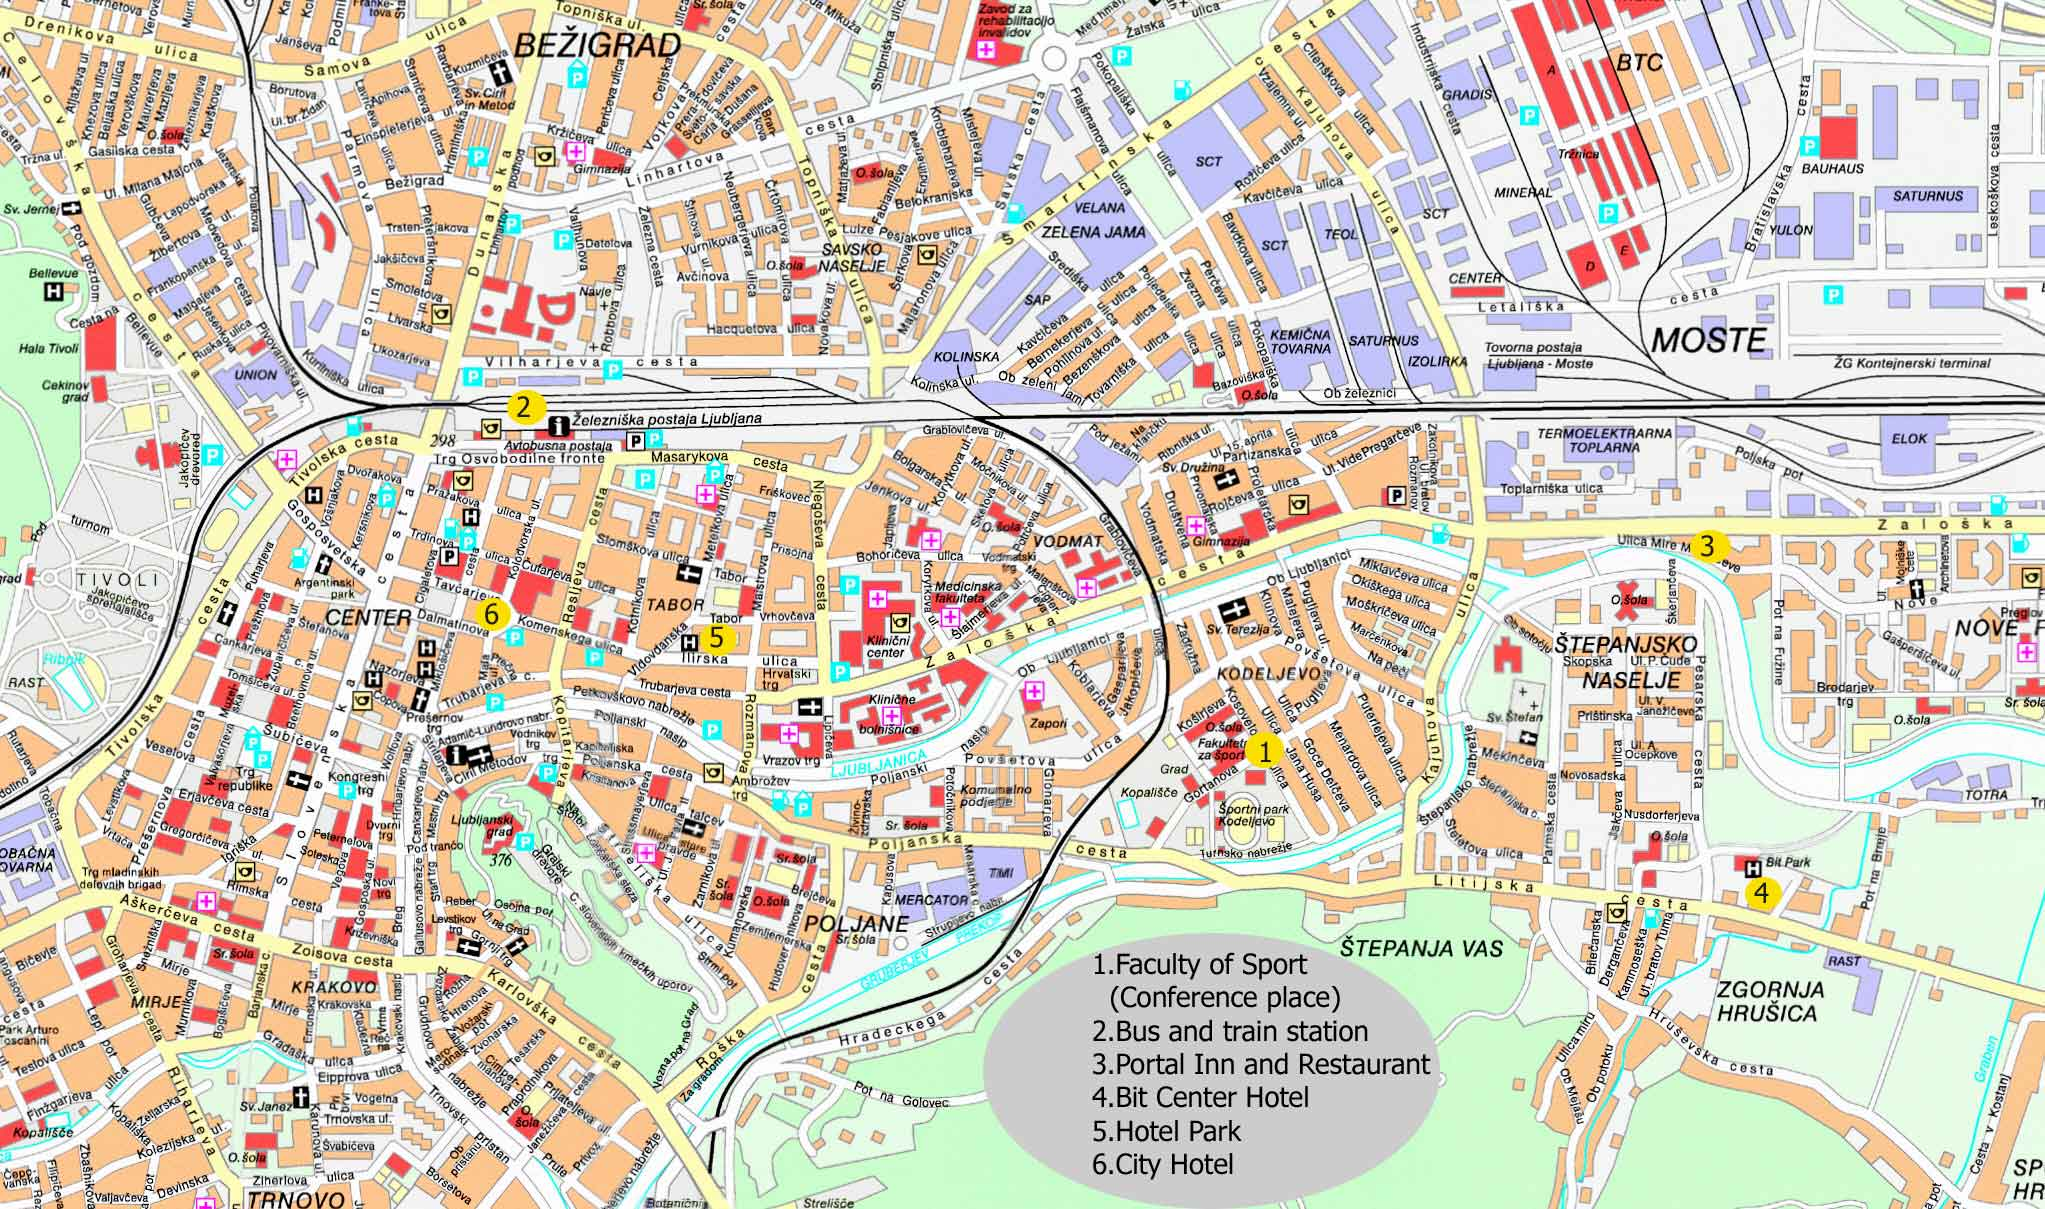 fakulteti u zagrebu karta Large Ljubljana Maps for Free Download and Print | High Resolution  fakulteti u zagrebu karta